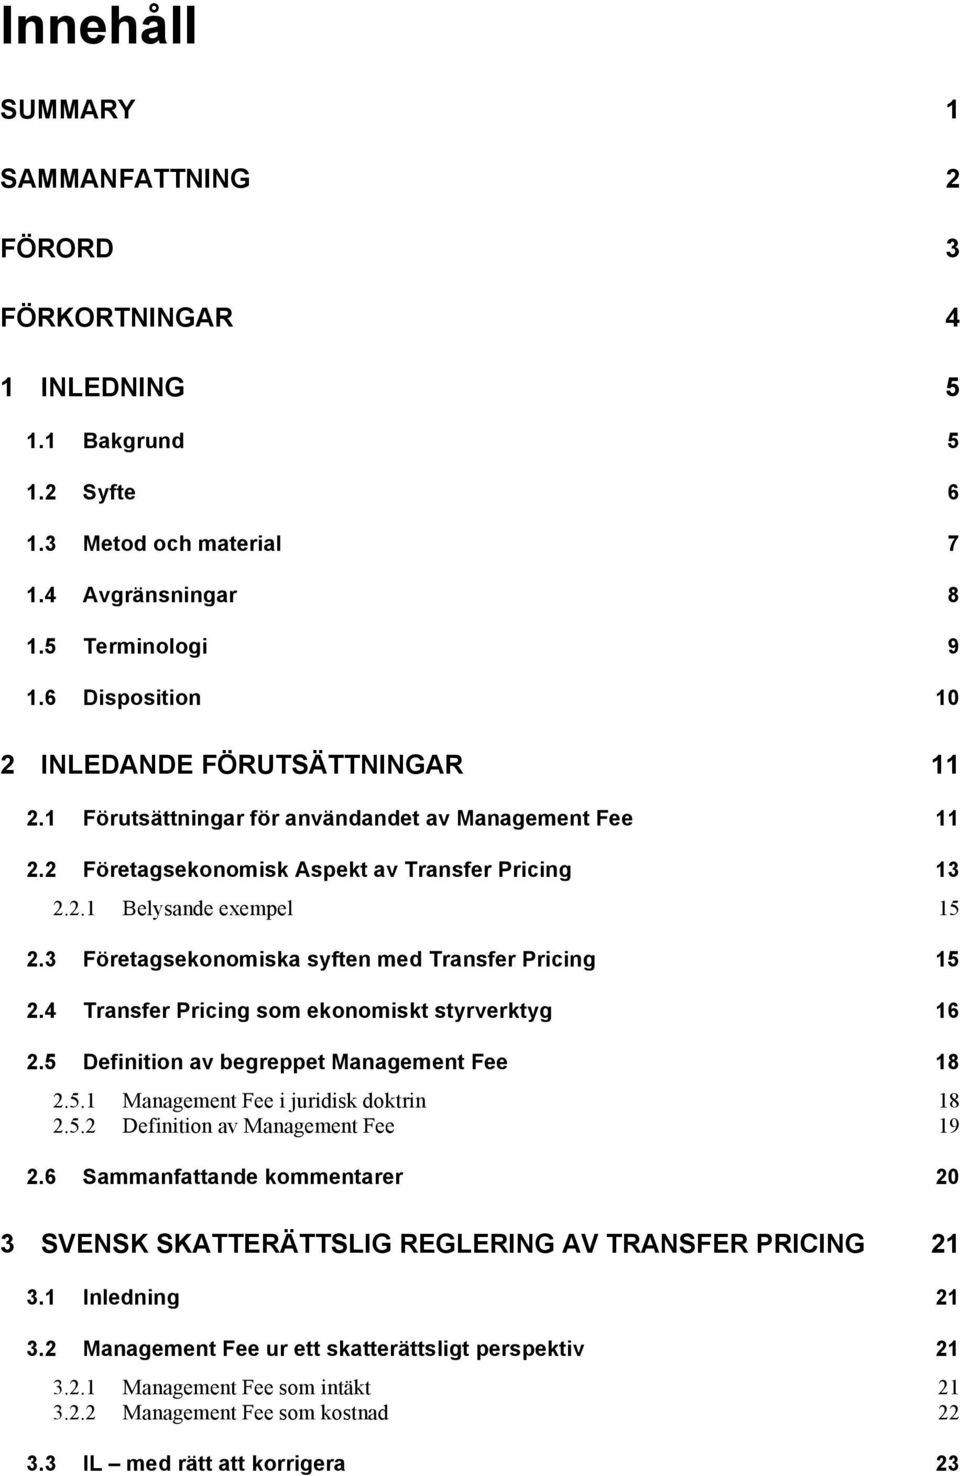 3 Företagsekonomiska syften med Transfer Pricing 15 2.4 Transfer Pricing som ekonomiskt styrverktyg 16 2.5 Definition av begreppet Management Fee 18 2.5.1 Management Fee i juridisk doktrin 18 2.5.2 Definition av Management Fee 19 2.